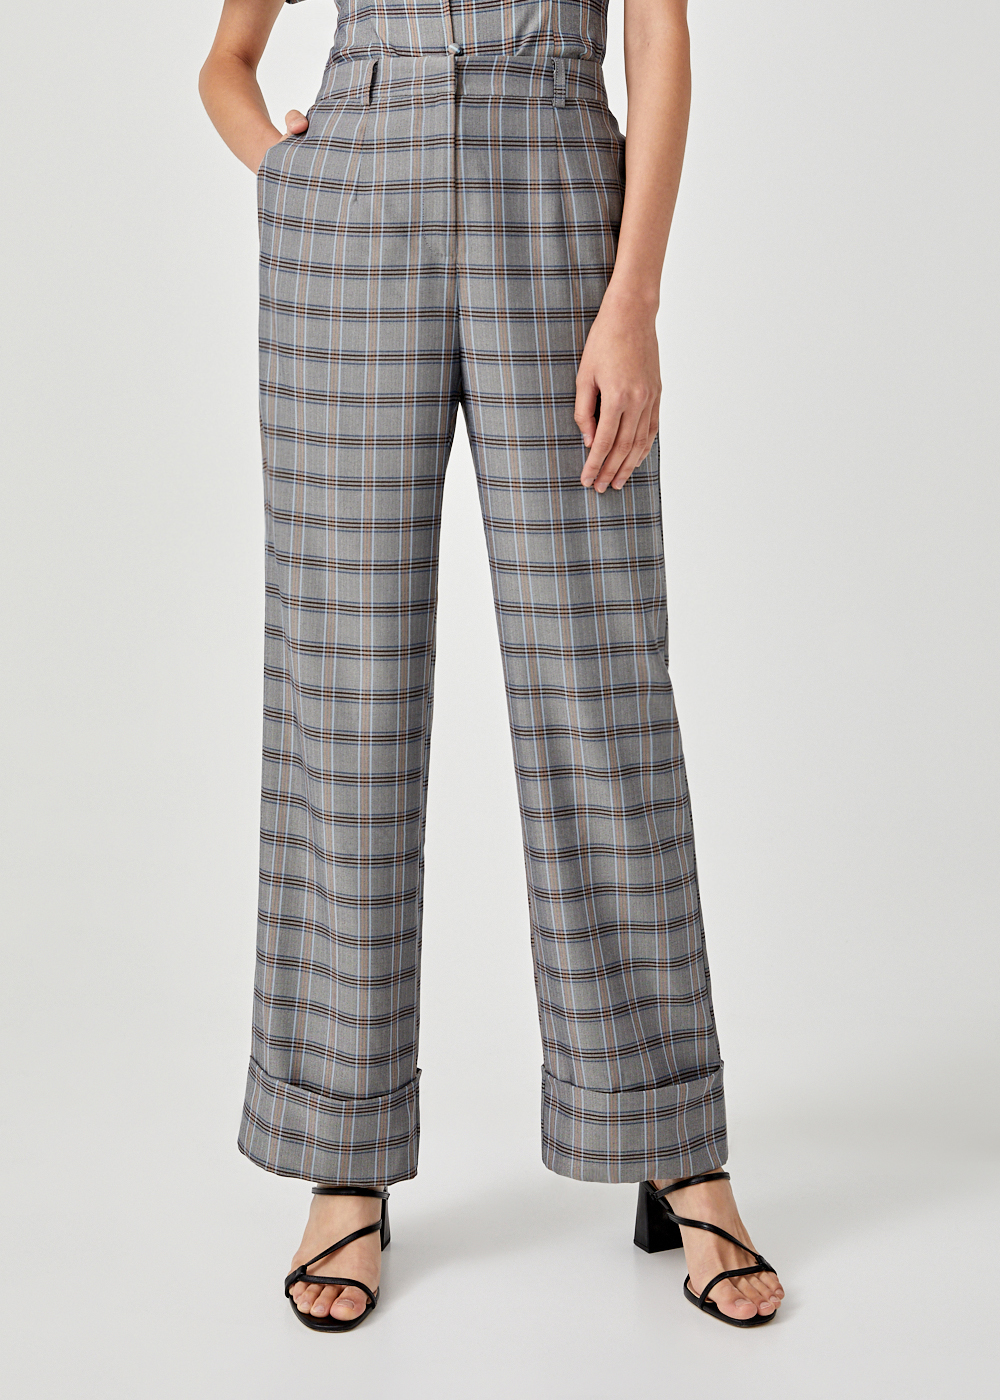 Nathalie Plaid Straight Leg Pants